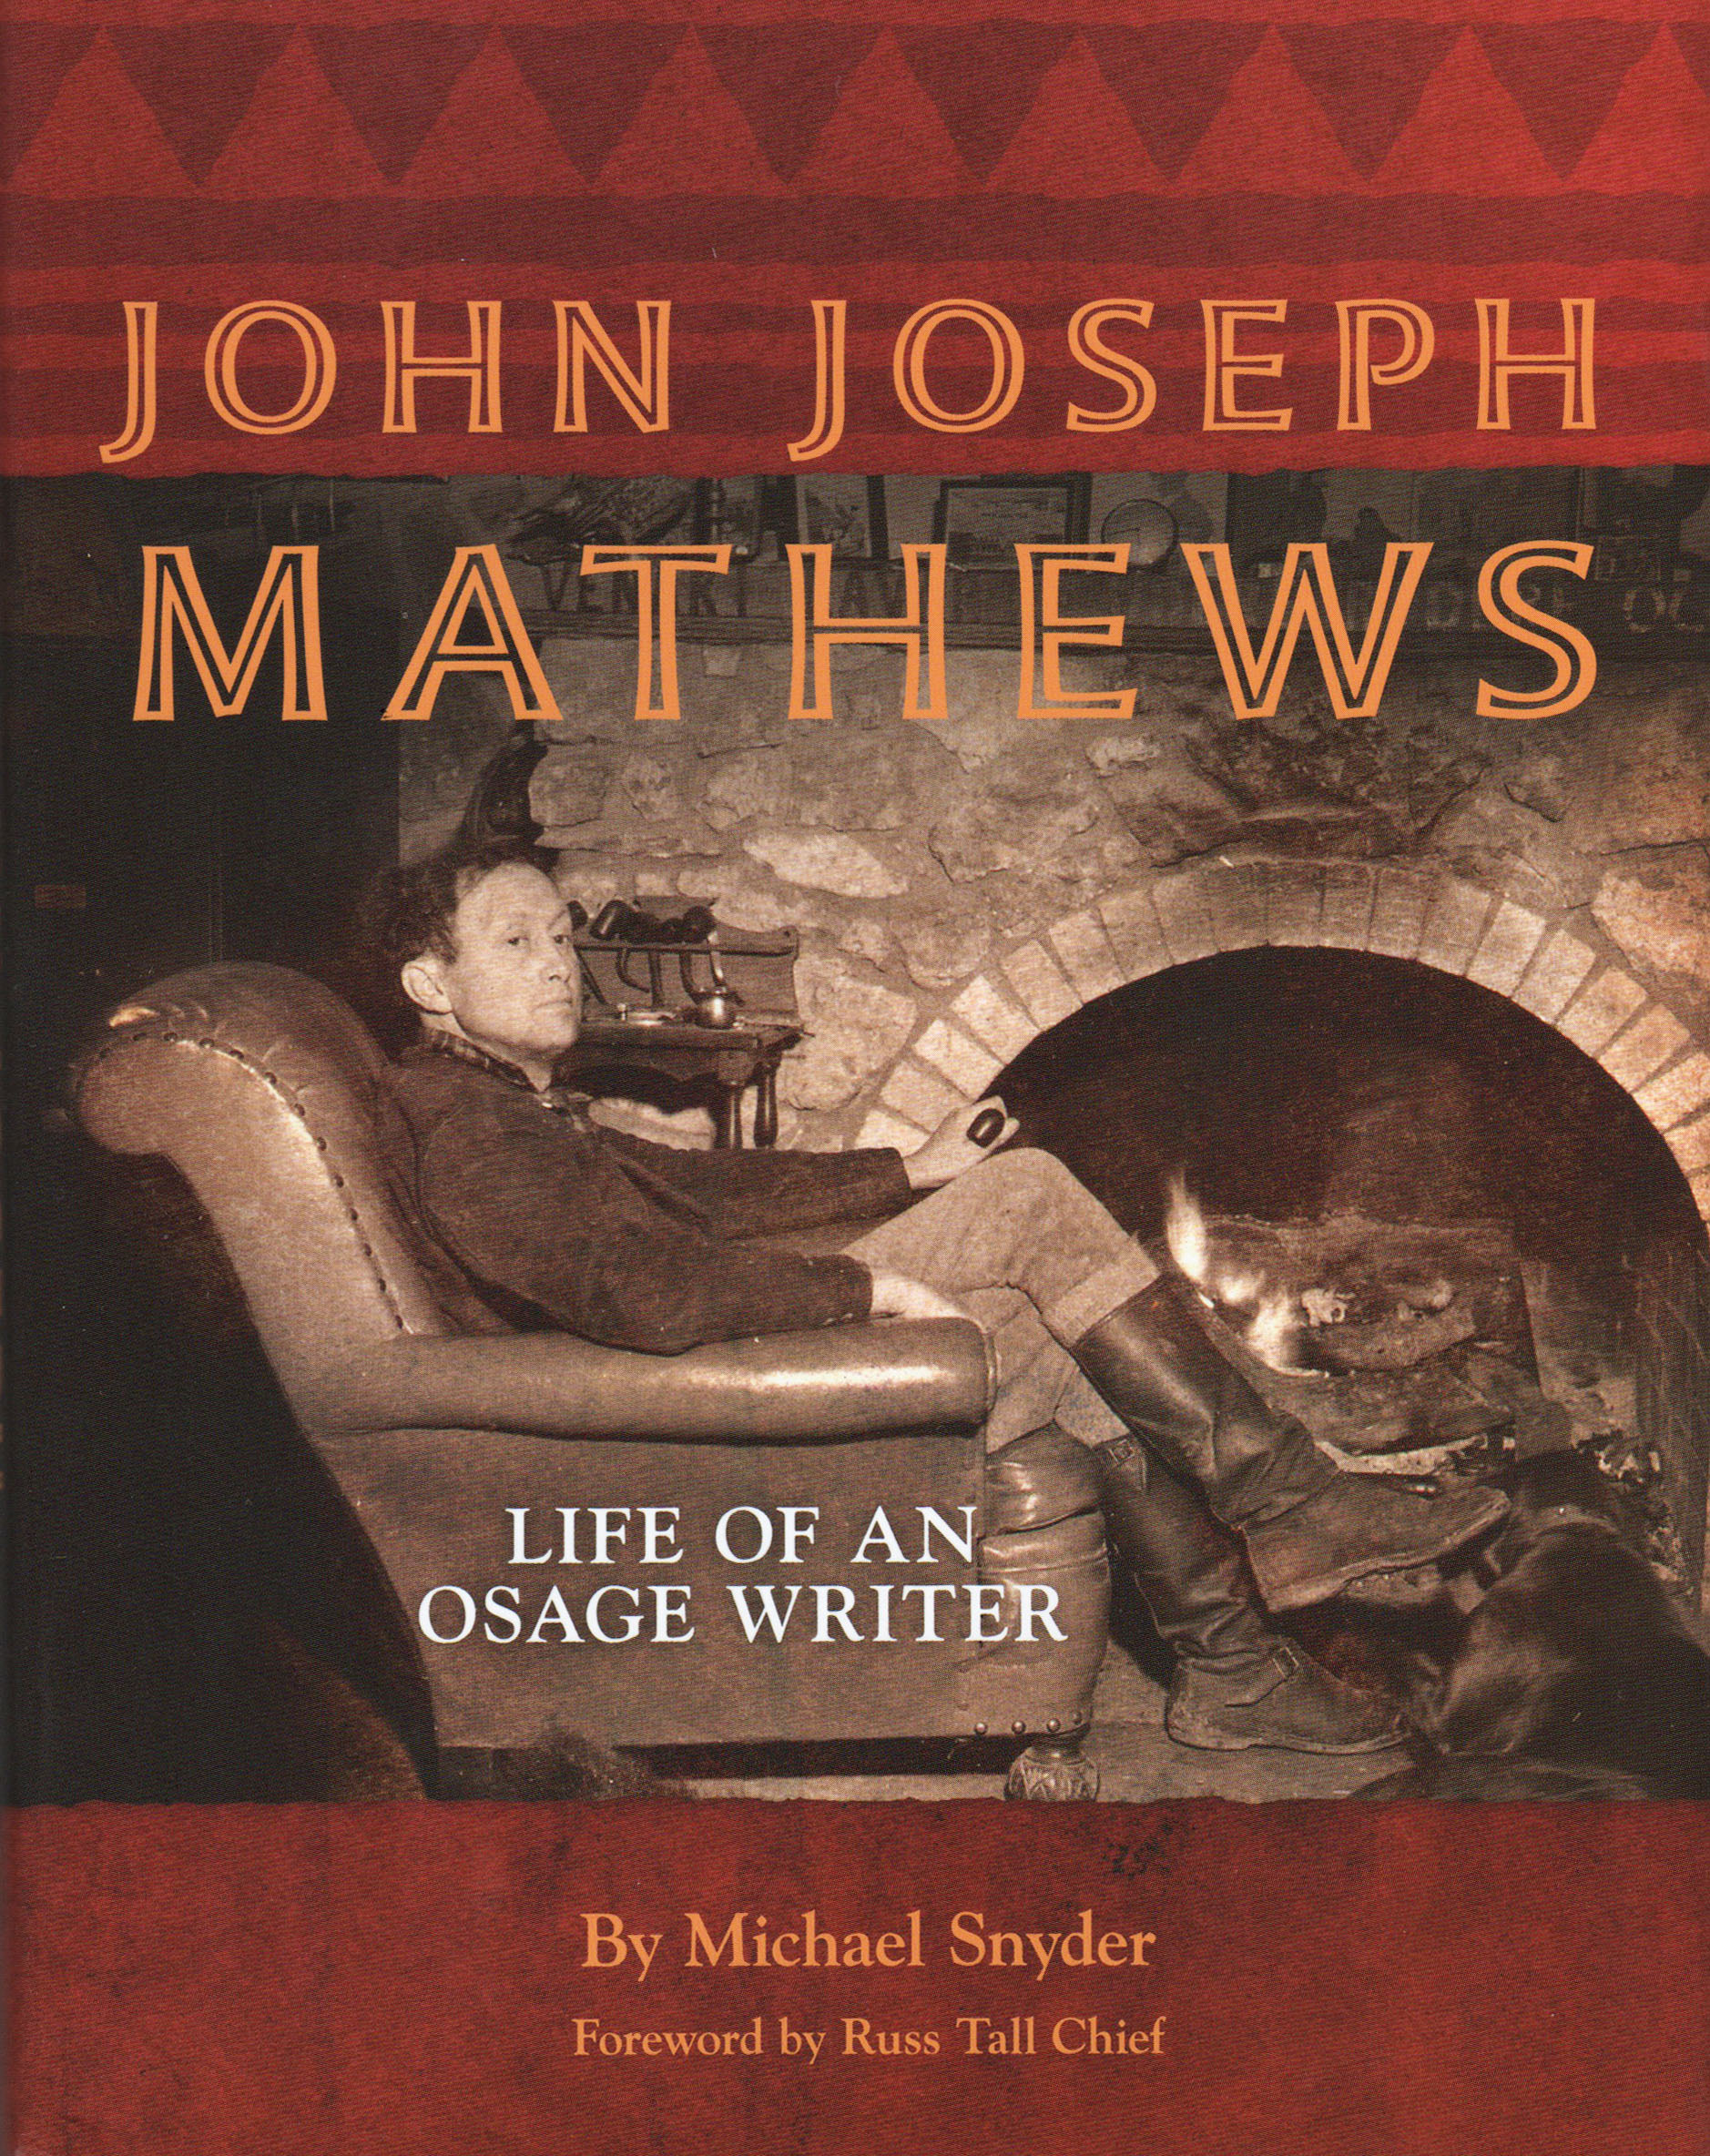 ON Museum to host Book Reading and Panel on biography of John Joseph Mathews